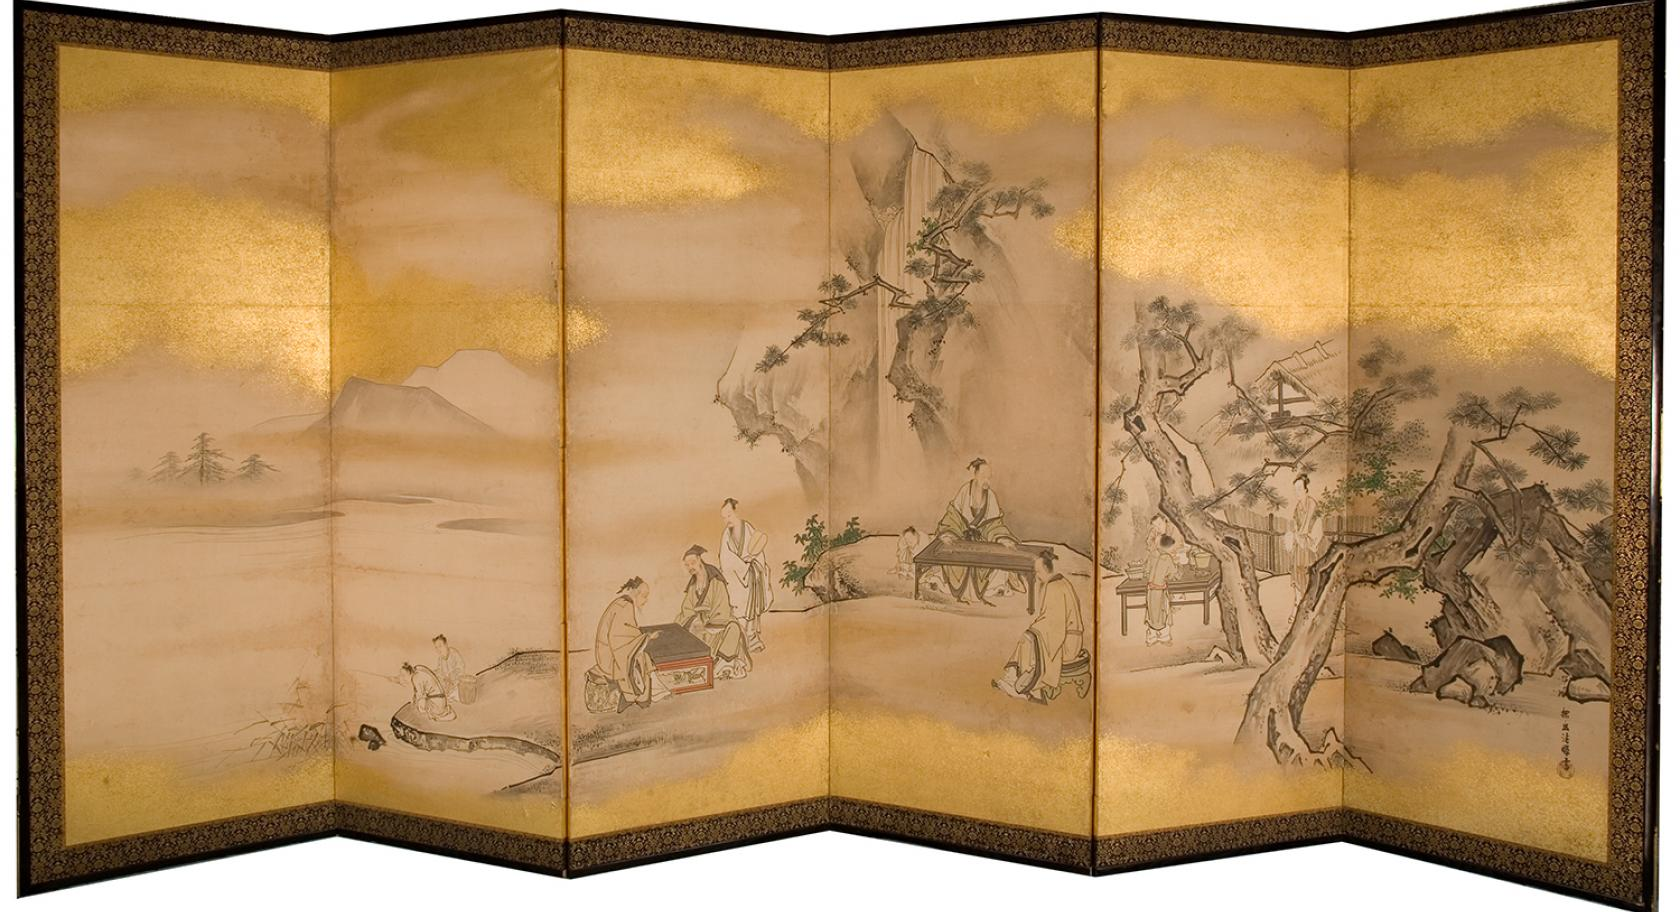 Kano Tanyu, Six-Panel Screen Depicting a Musician and Go Players, UMFA1999.38.6